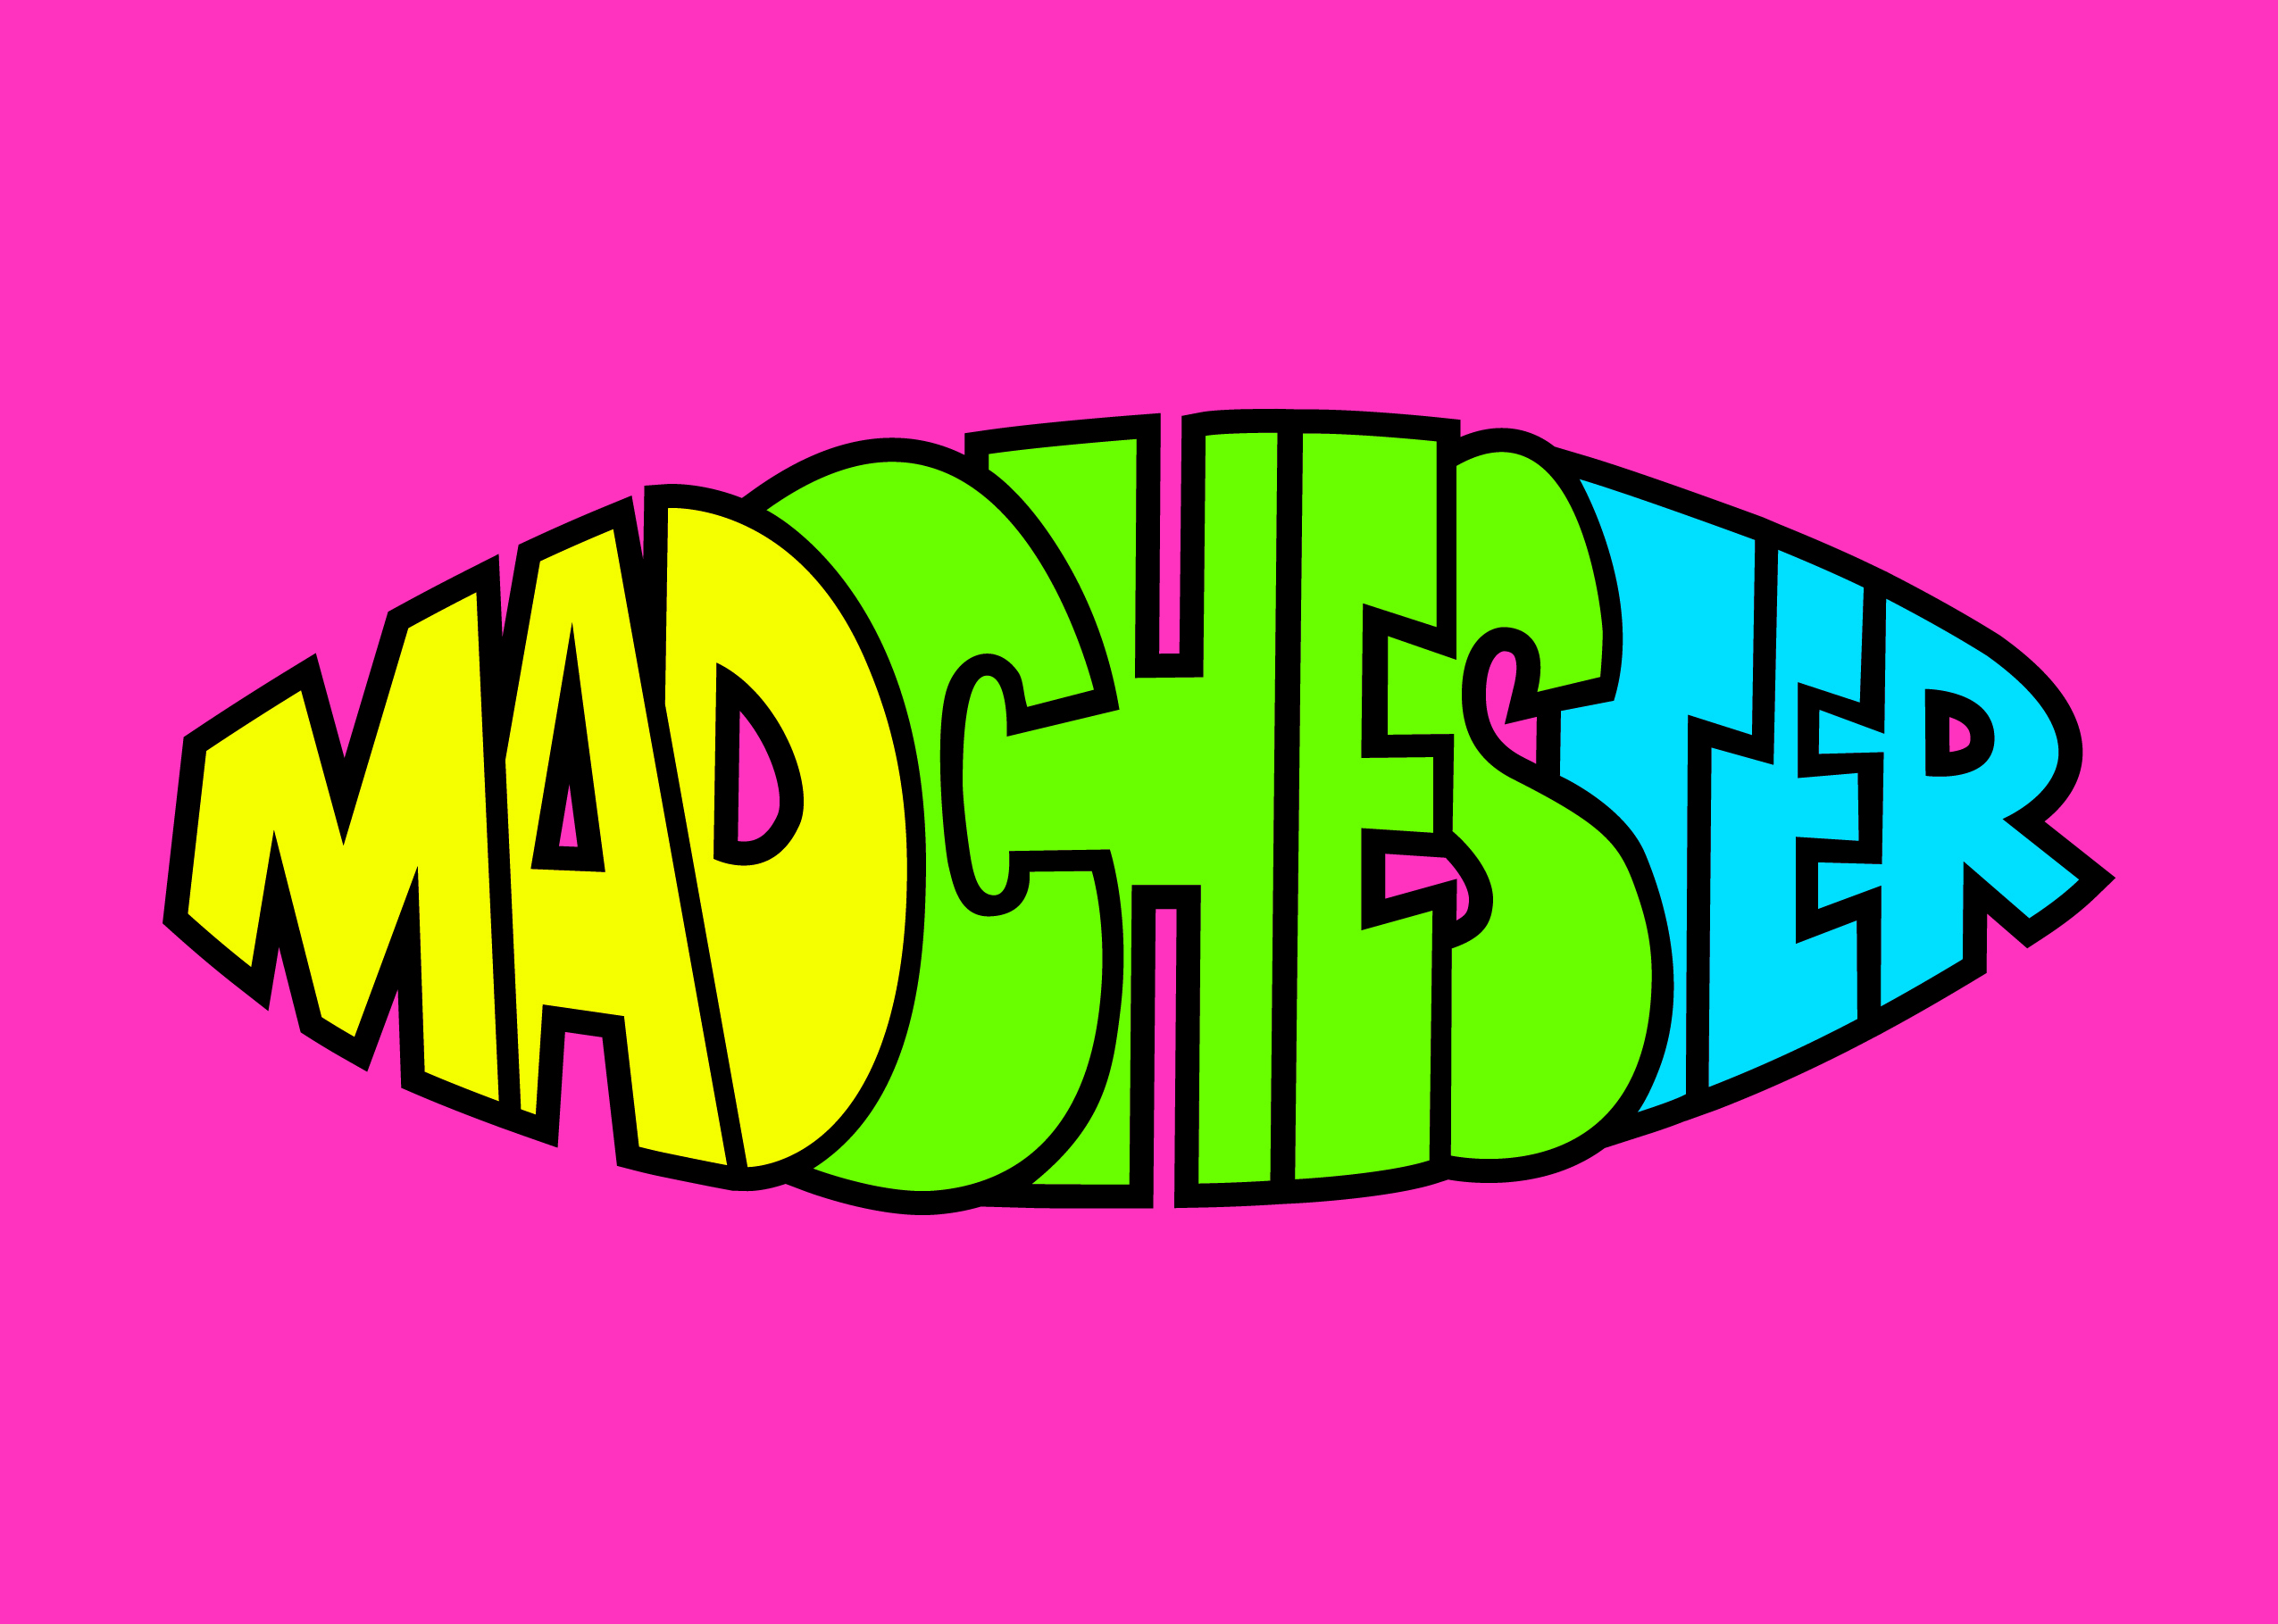 MADCHESTER2